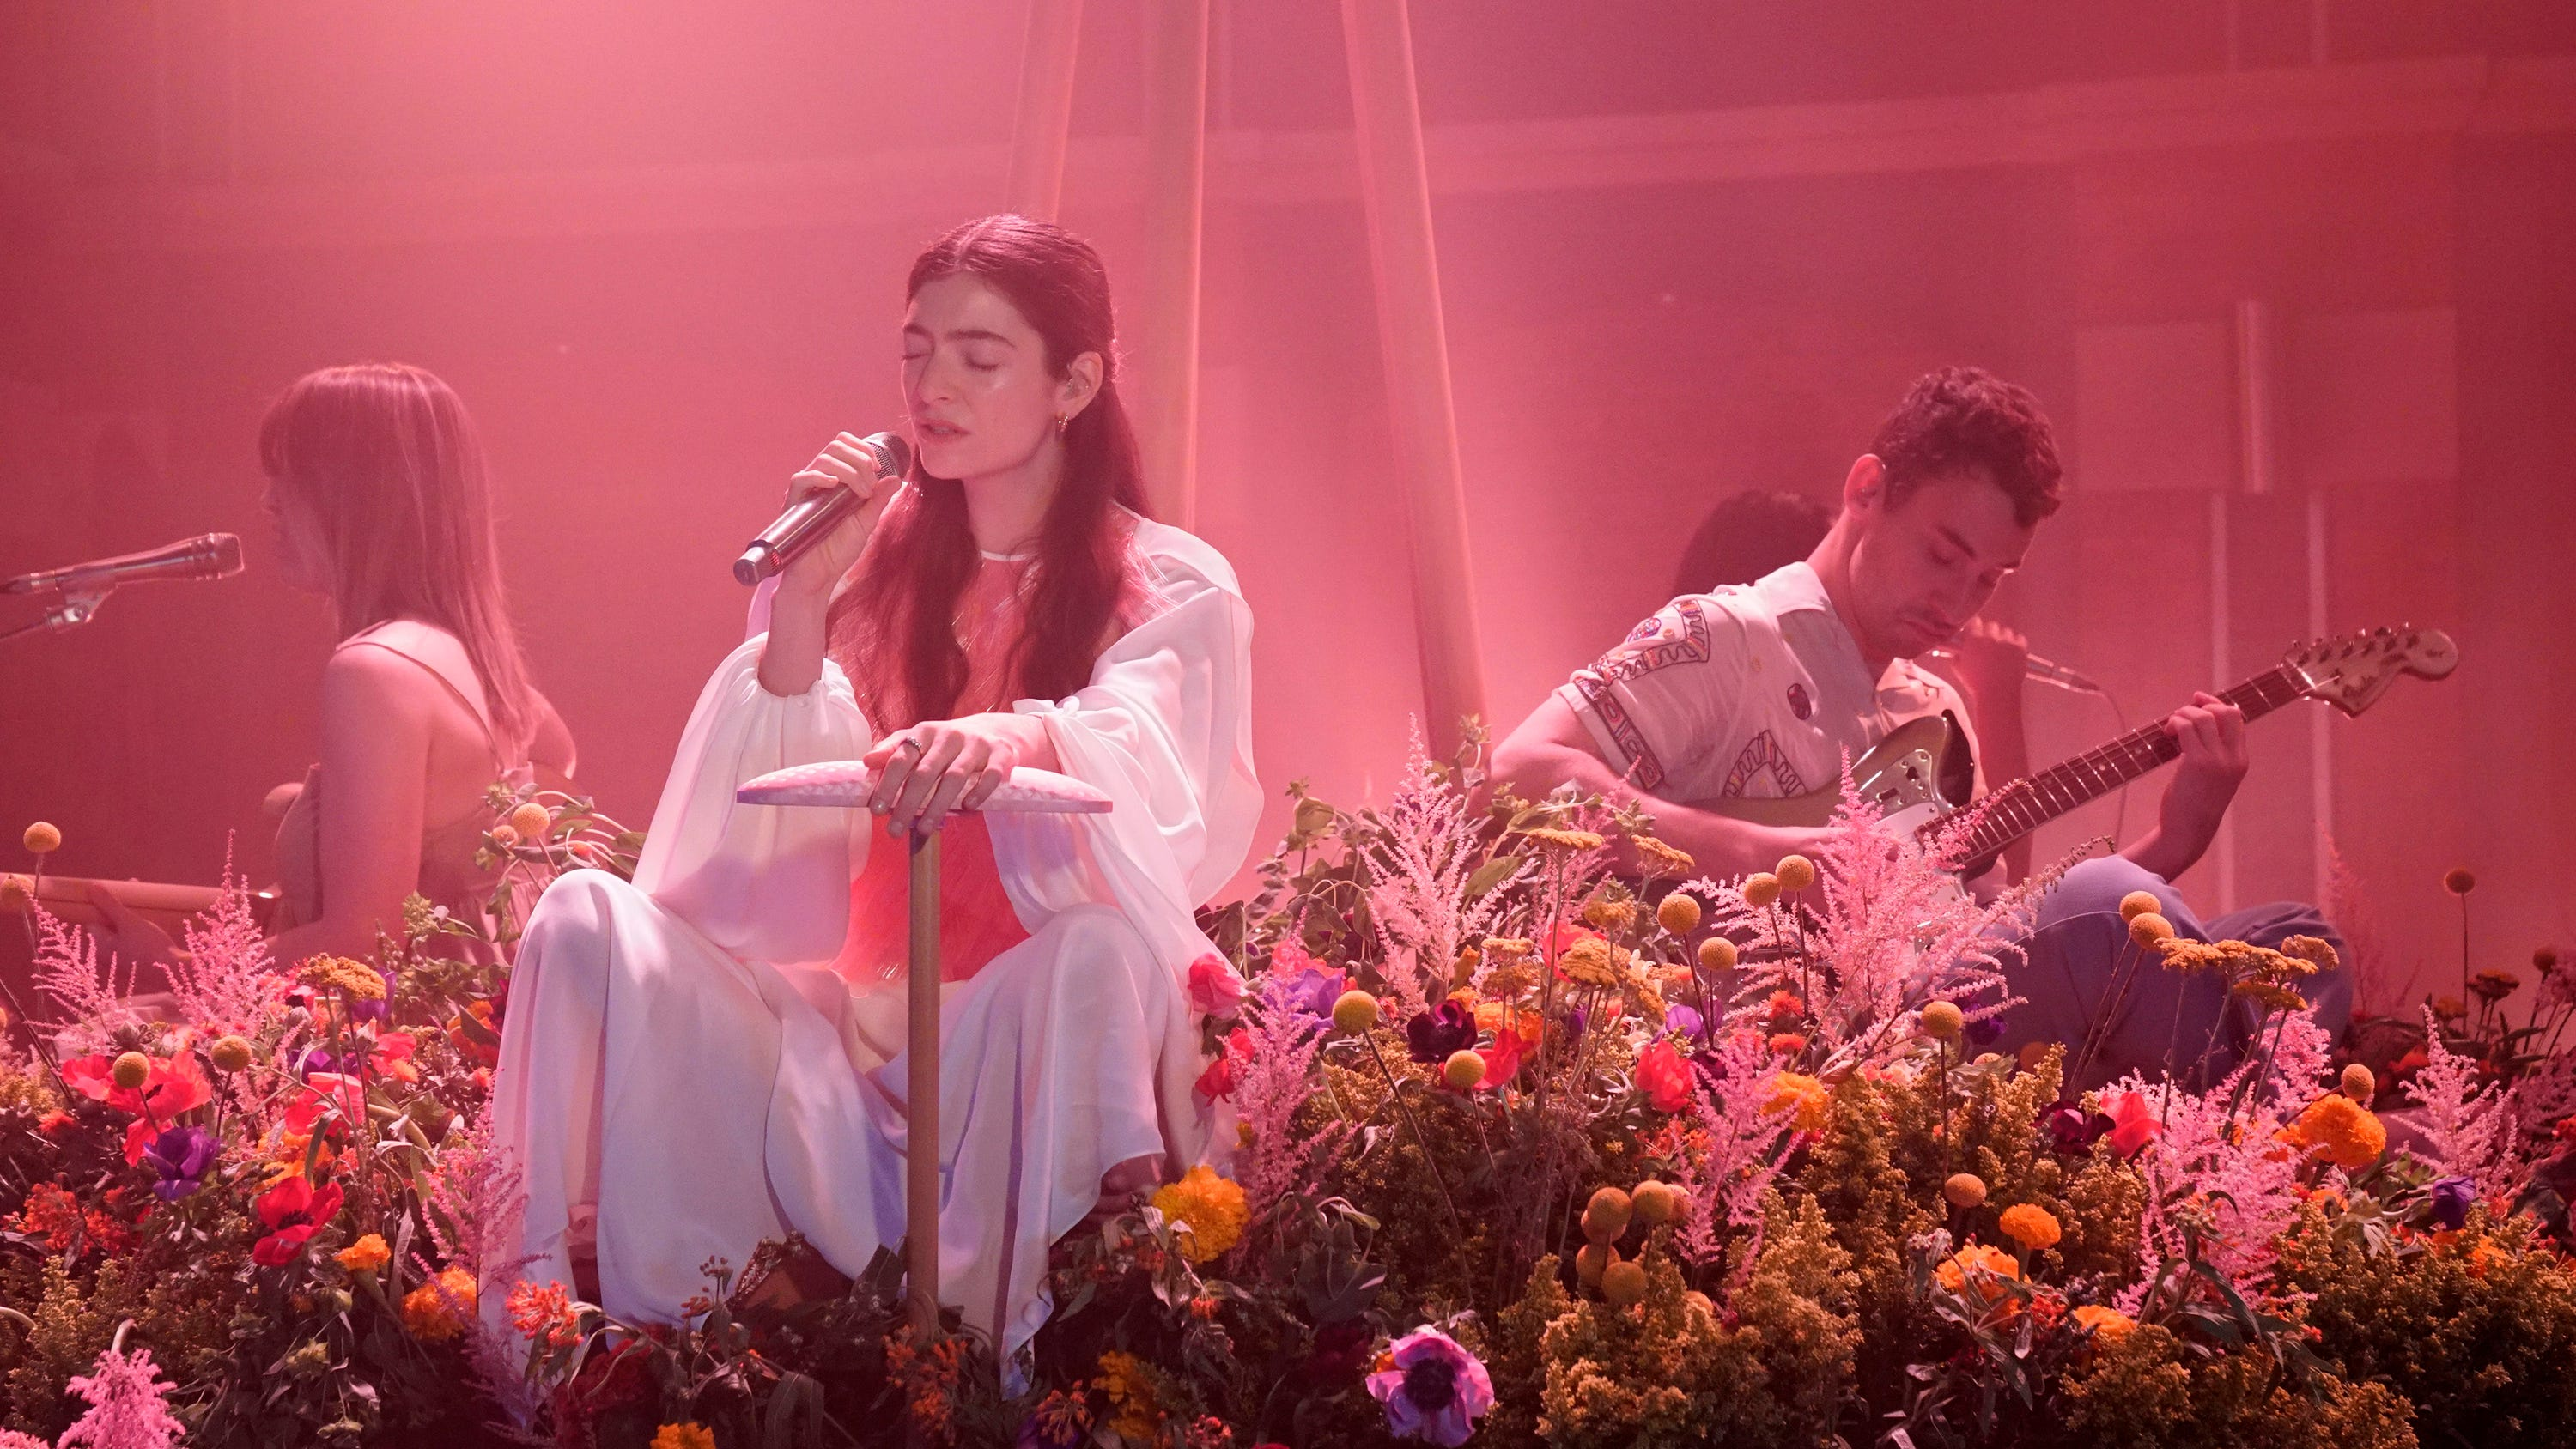 Lorde's'Stoned At The Nail Salon' has already created a few of our favorite memes